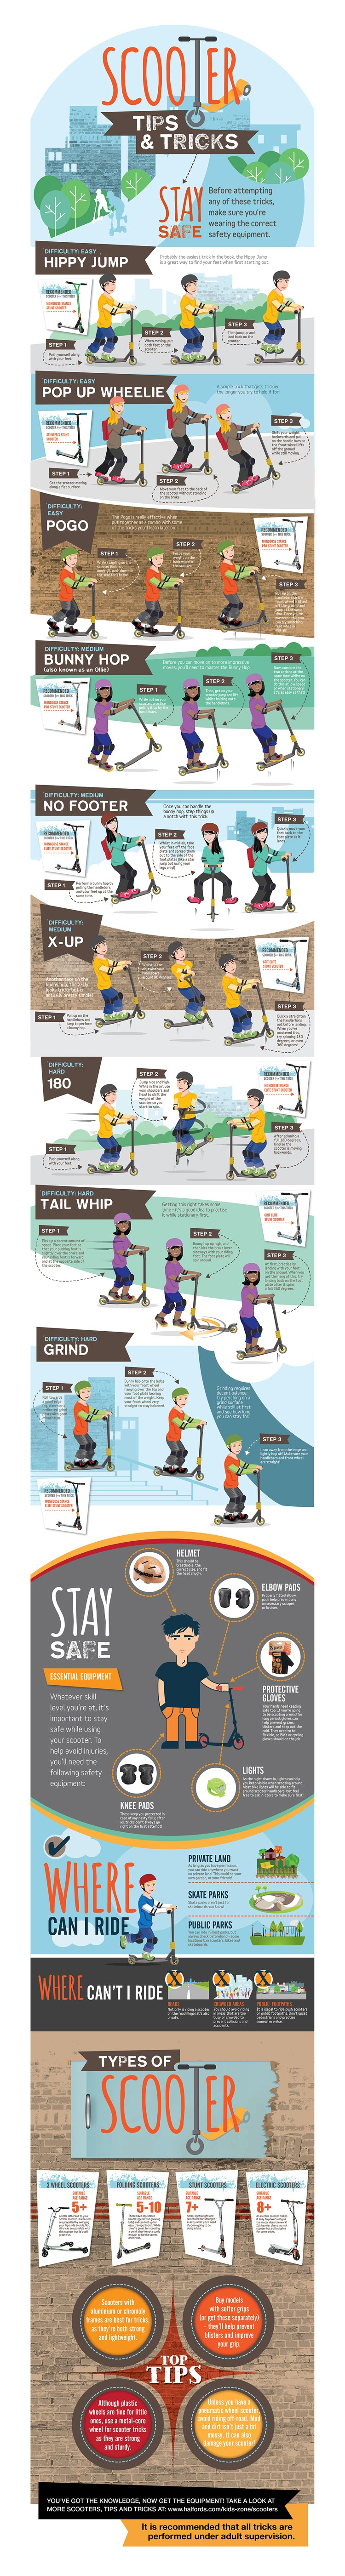 An infographic showing scooter tips and tricks